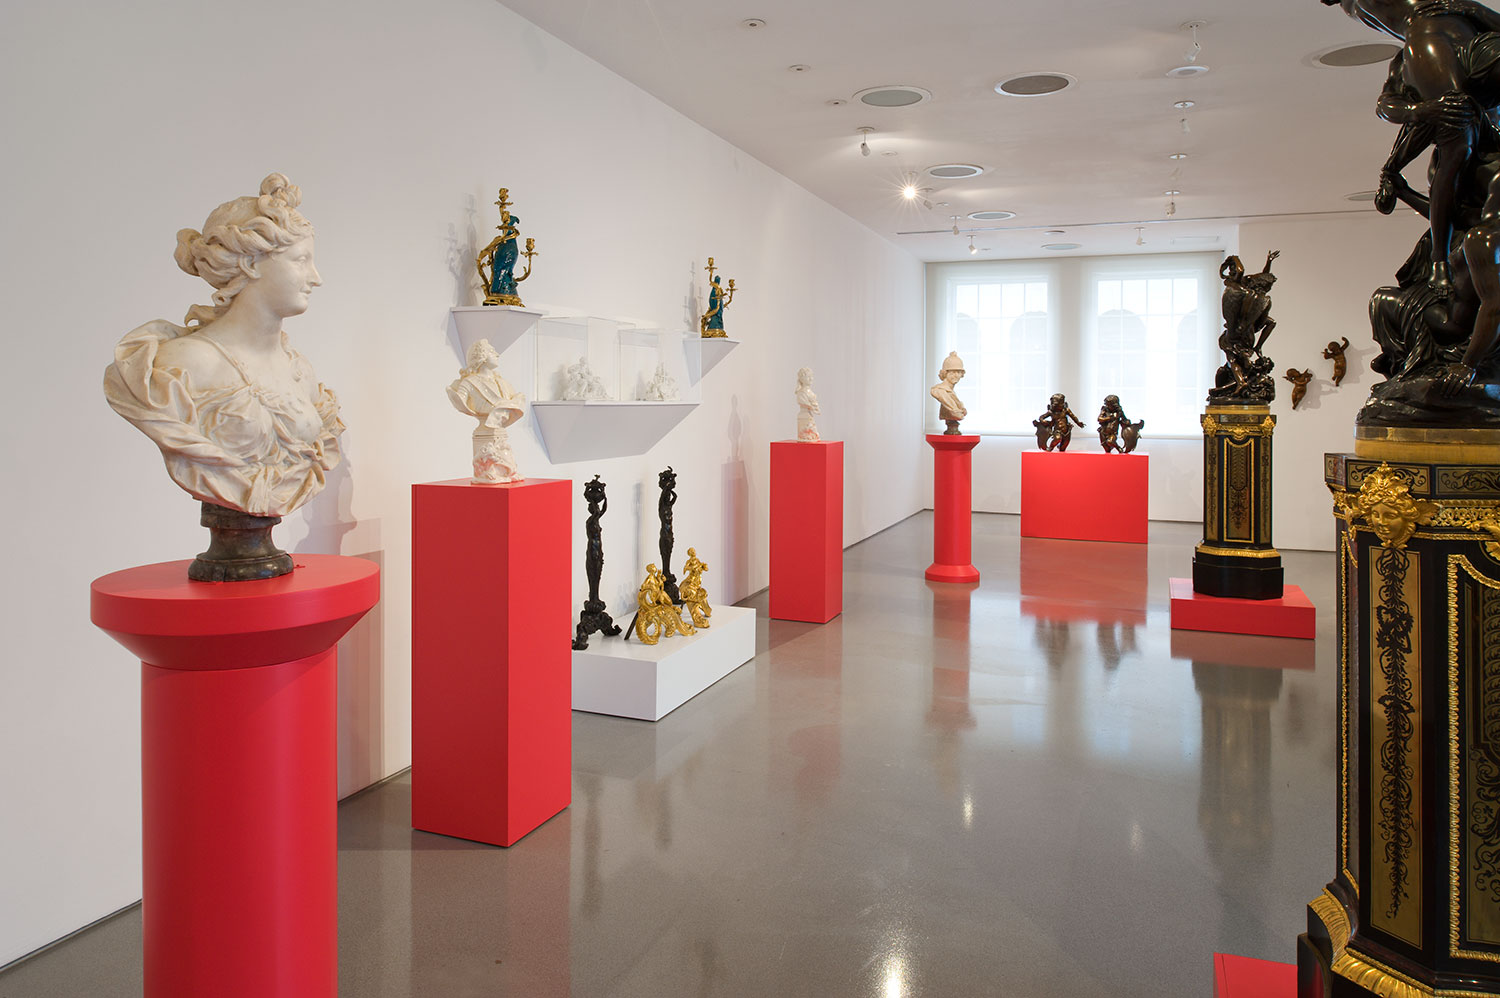 Installation view of Taking Shape: Finding sculpture in the decorative arts 2